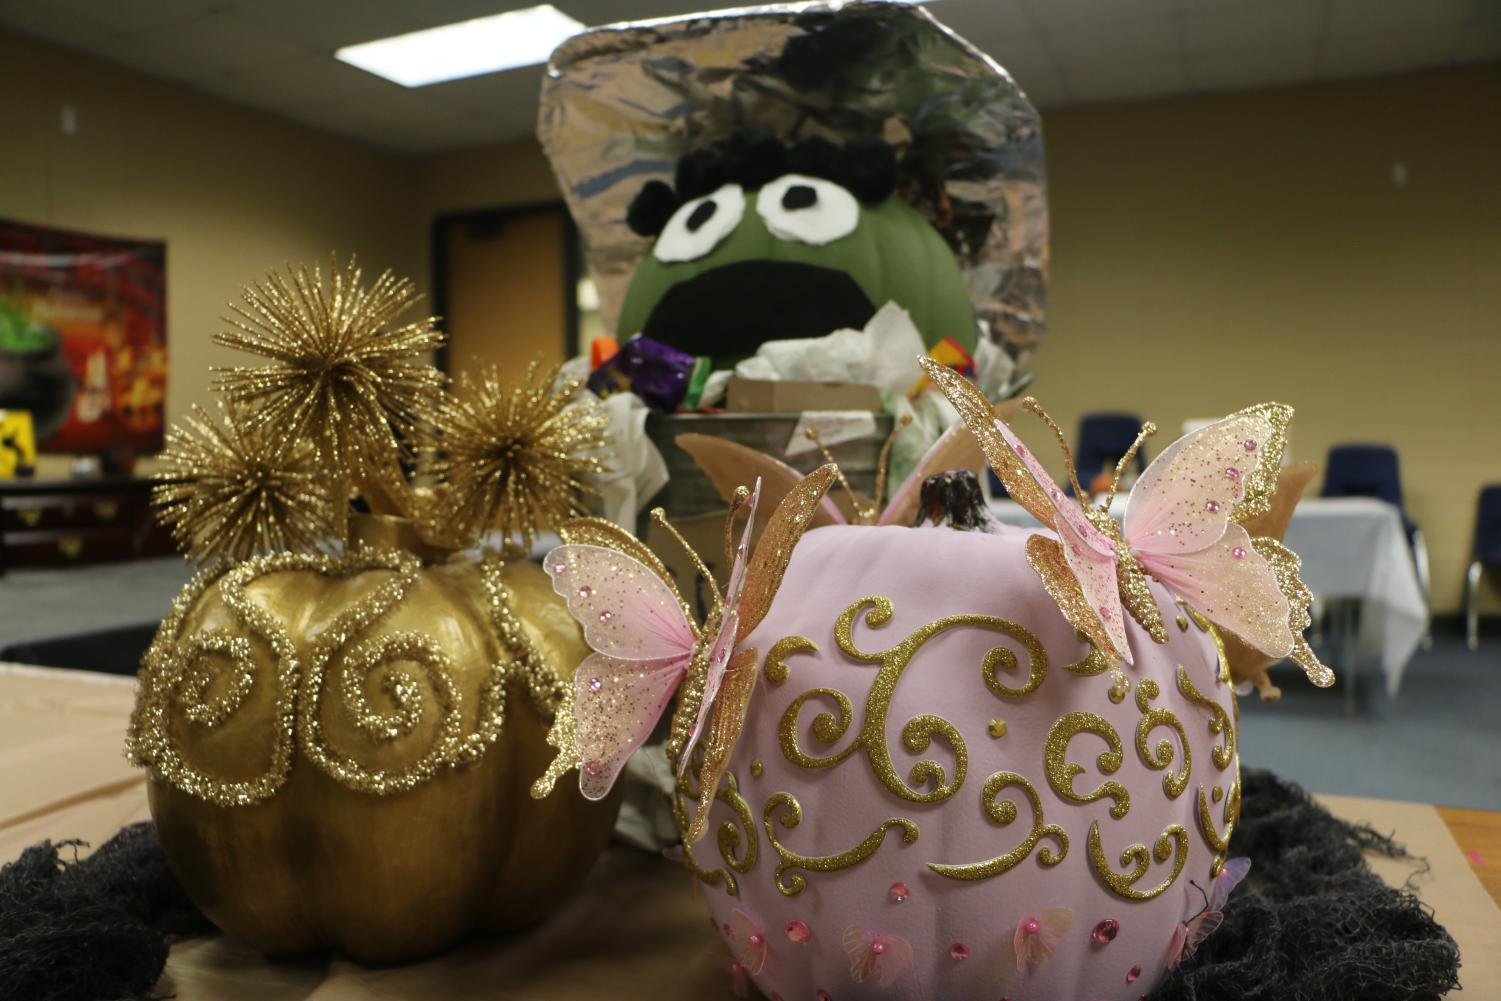 Oscar the Grouch by Brianna Trask peaks out from behind two beautiful entries.